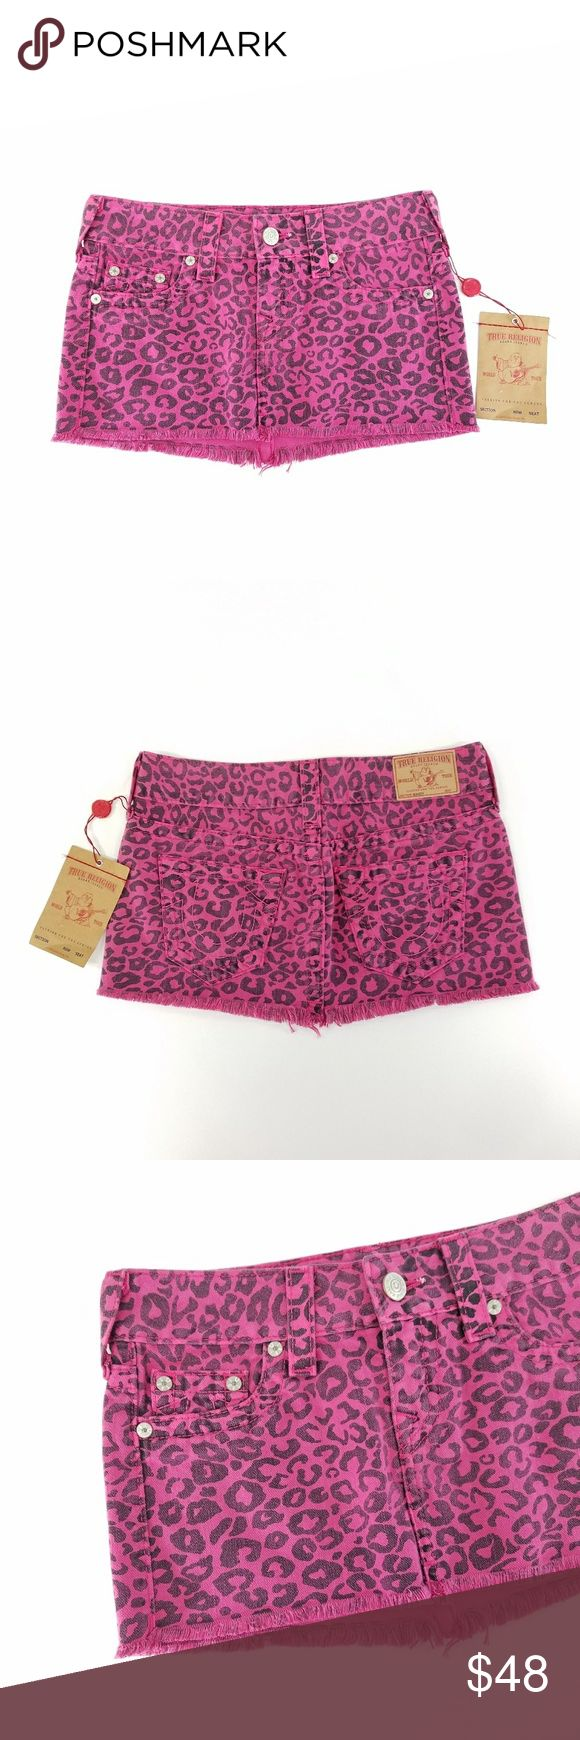 """NWT True Religion Pink Mandy Cheetah Skirt Women's True Religion Mandy Cheetah Skirt 100% Cotton Size 26 New With tags  Measurements Laying Flat: Waist: 14.5"""" Length: 10"""" True Religion Skirts Mini"""